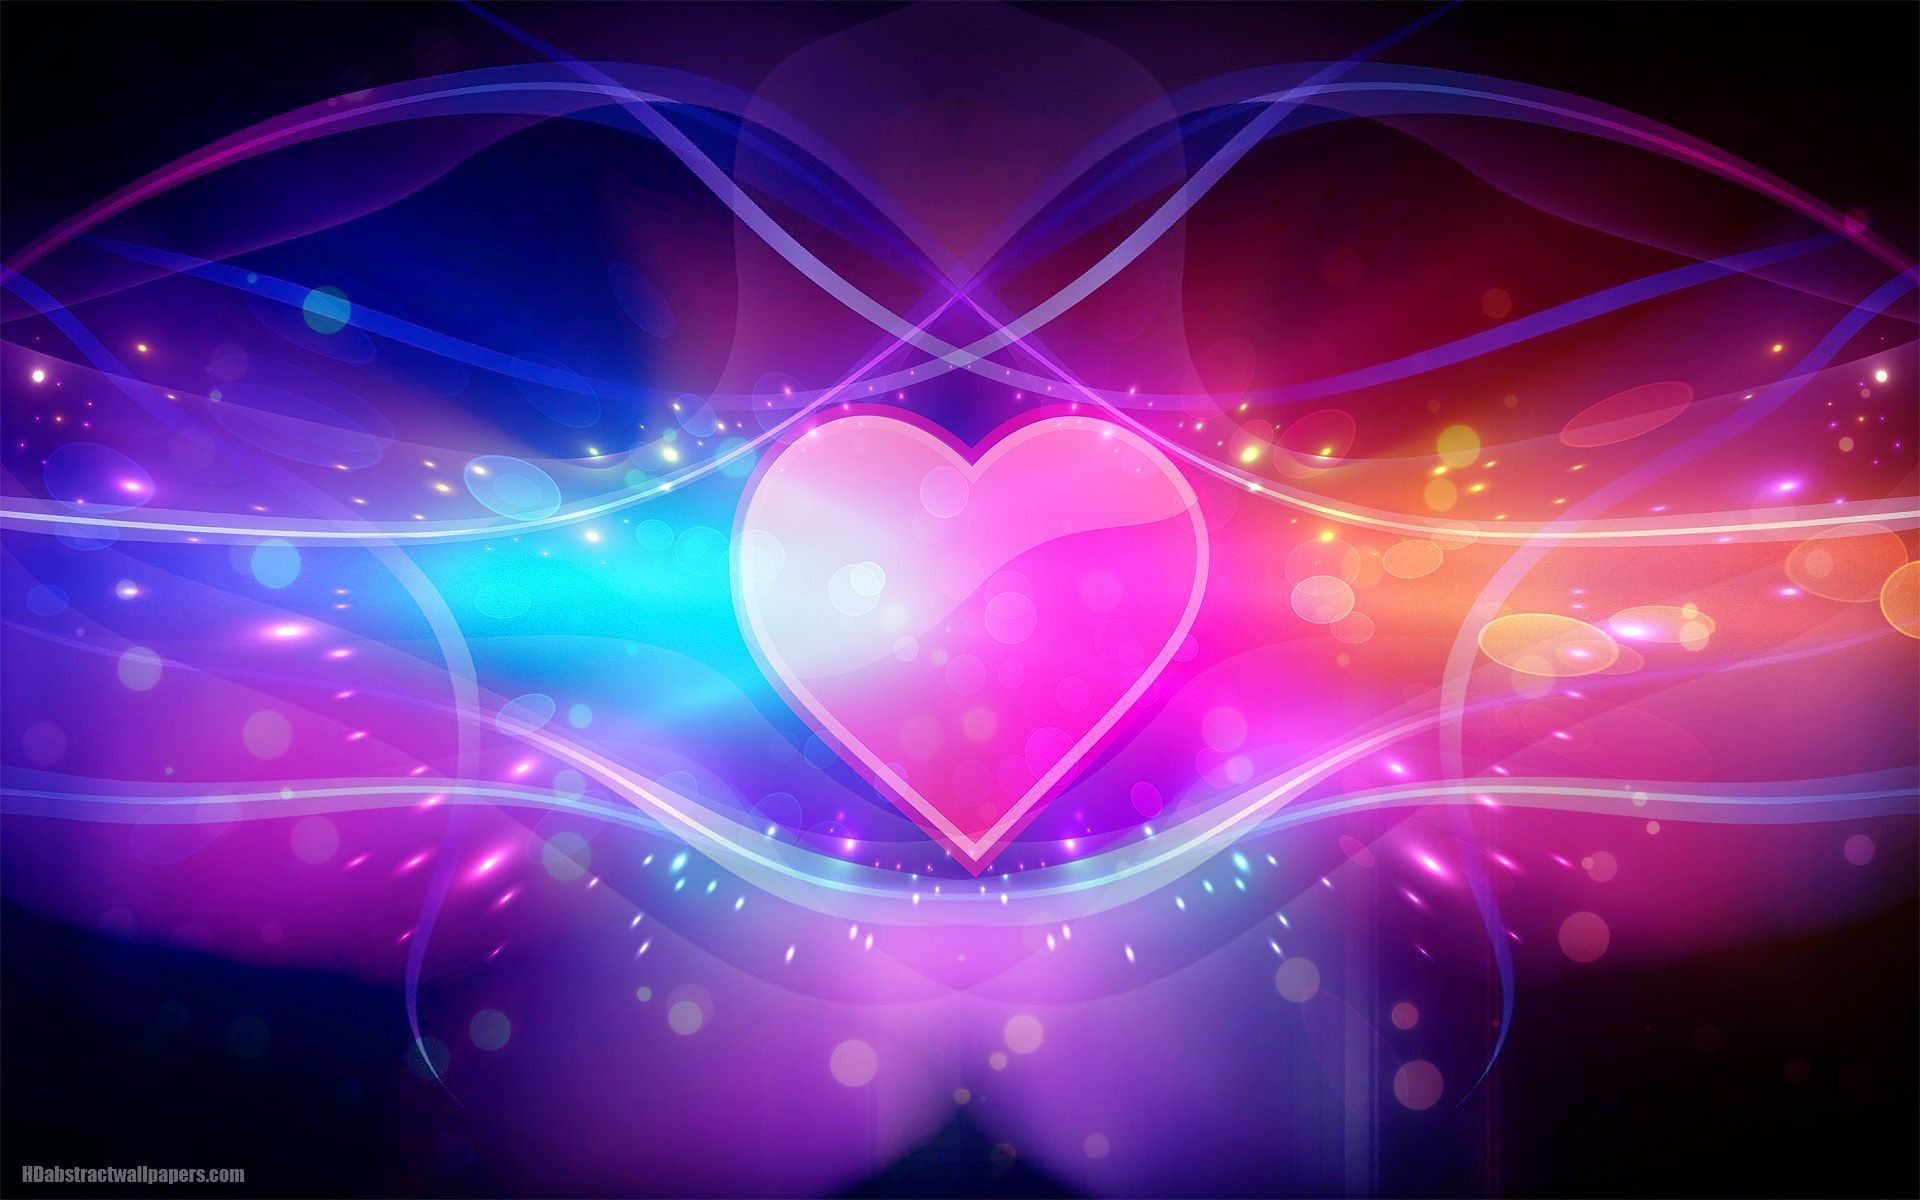 Abstract Heart Wallpapers   Top Abstract Heart Backgrounds 1920x1200